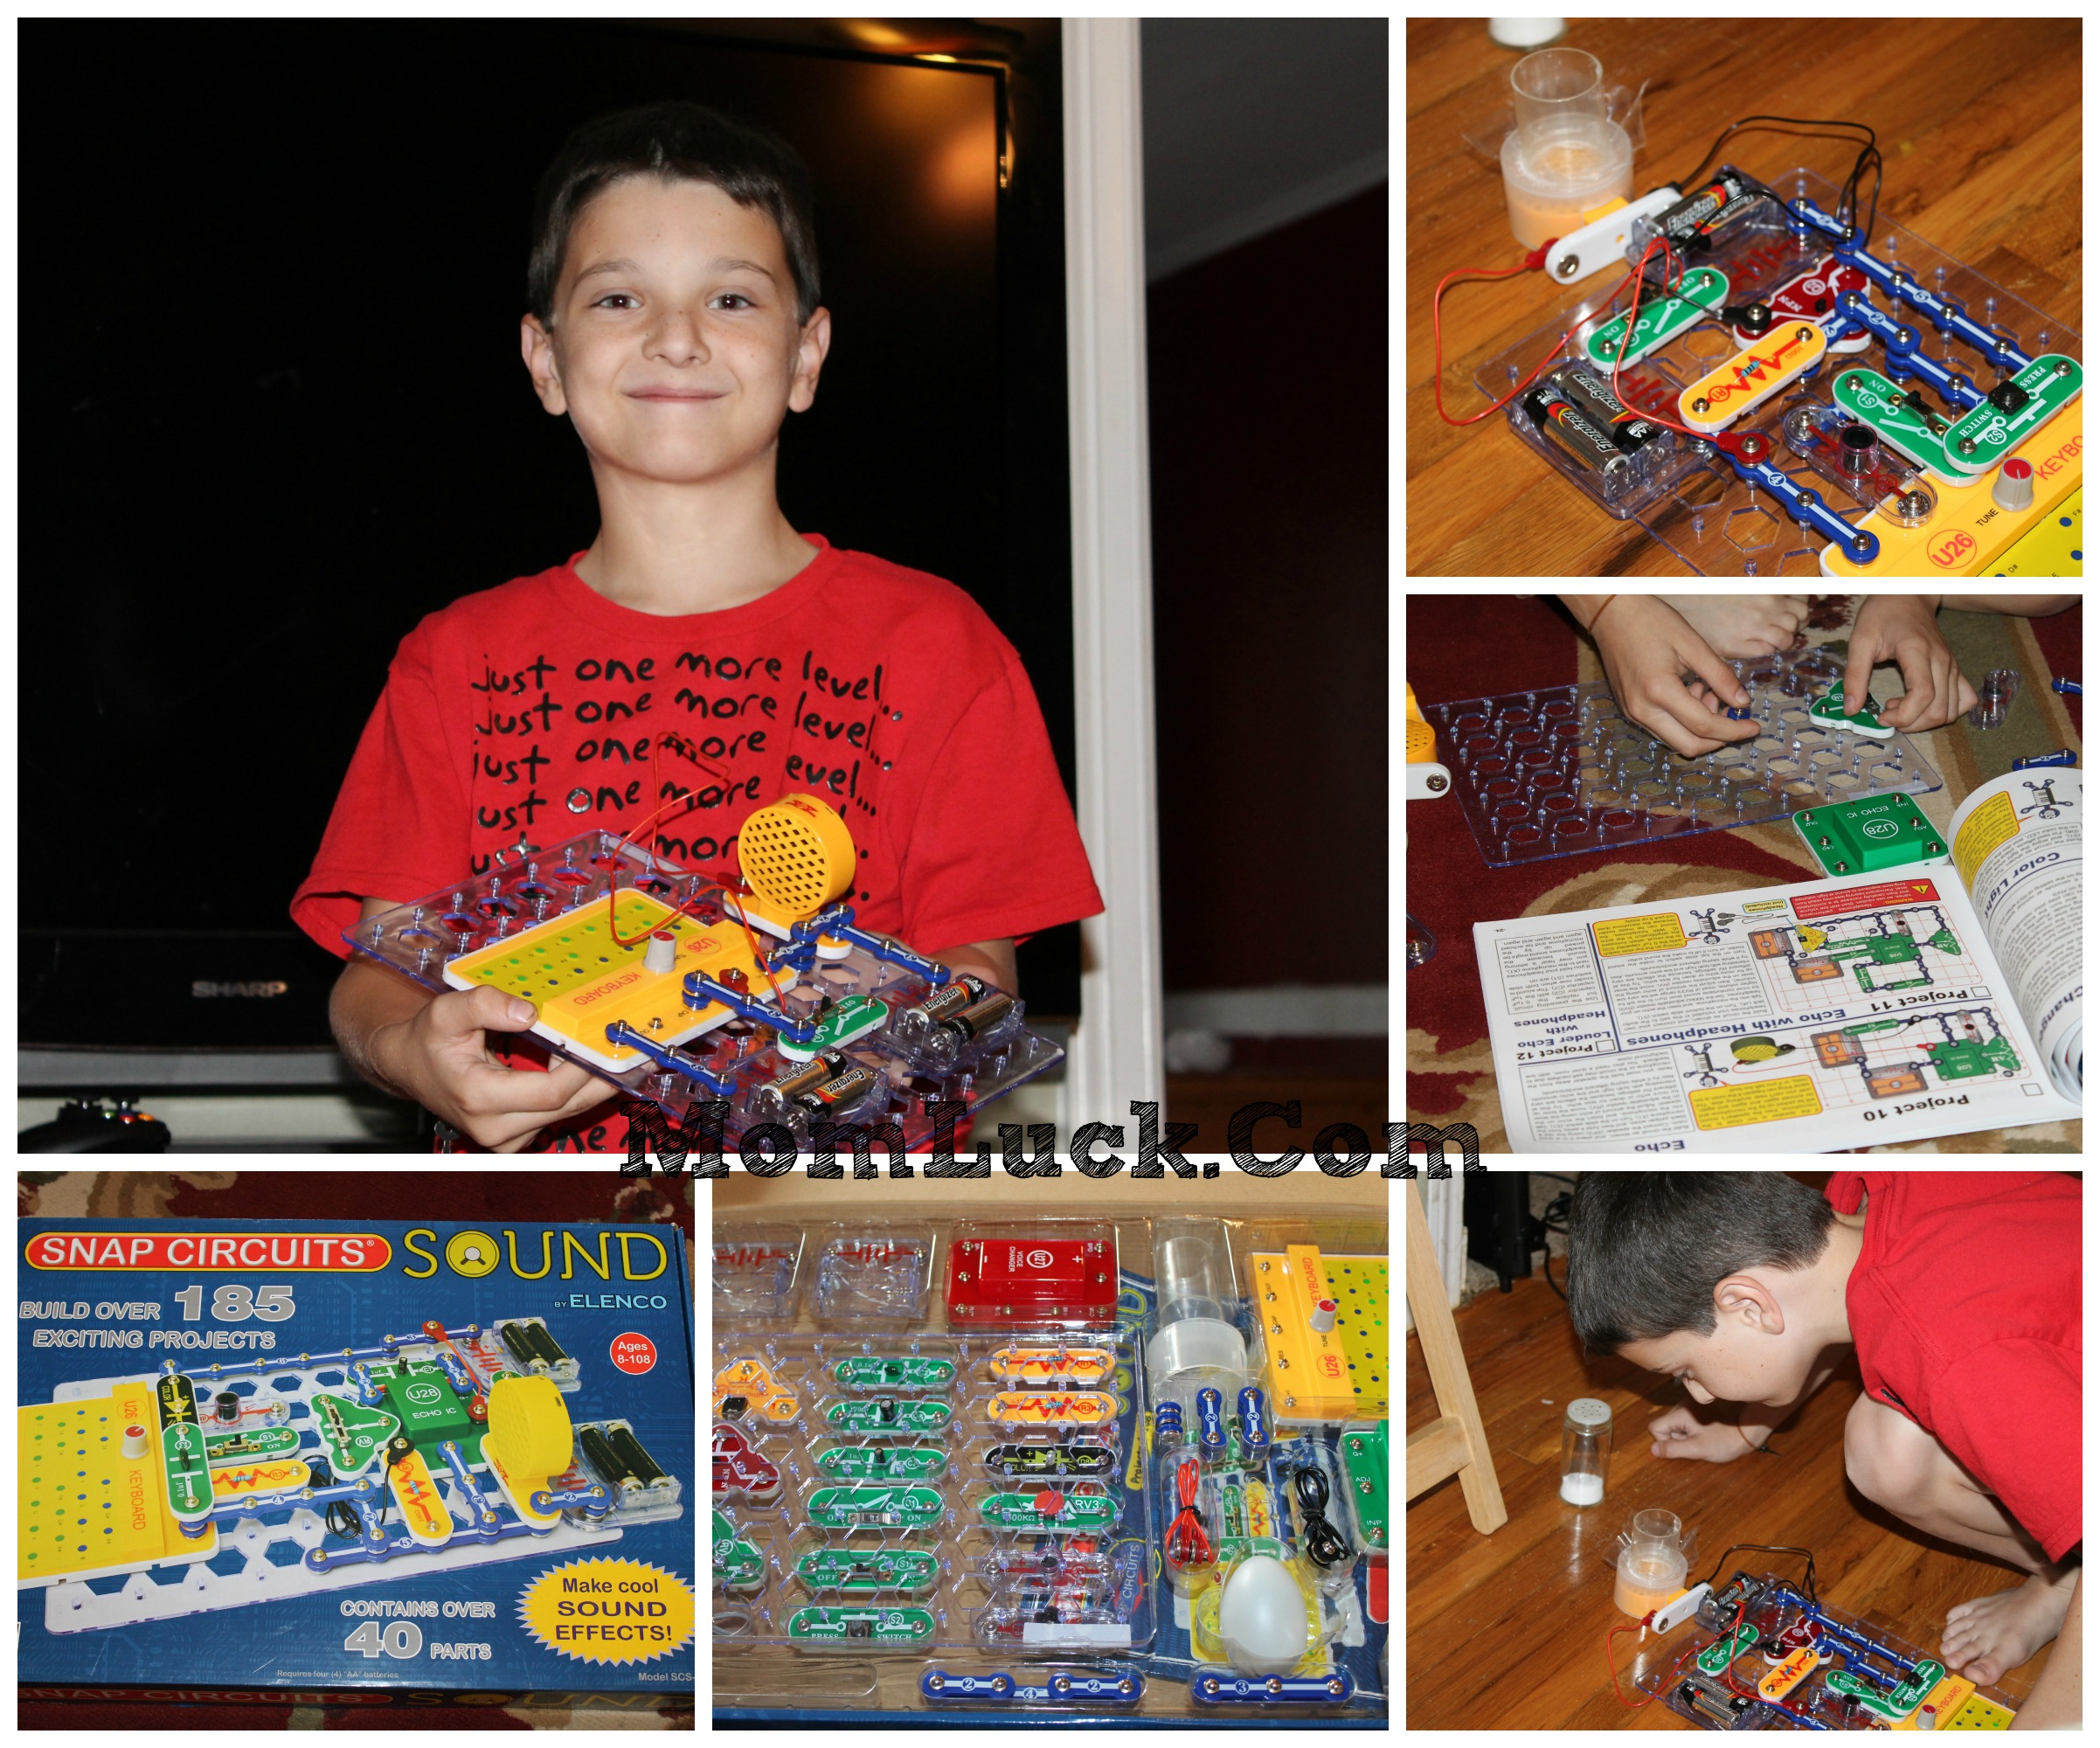 The Best Toys Of 2013 According To Astra Elenco Snap Circuits Sound